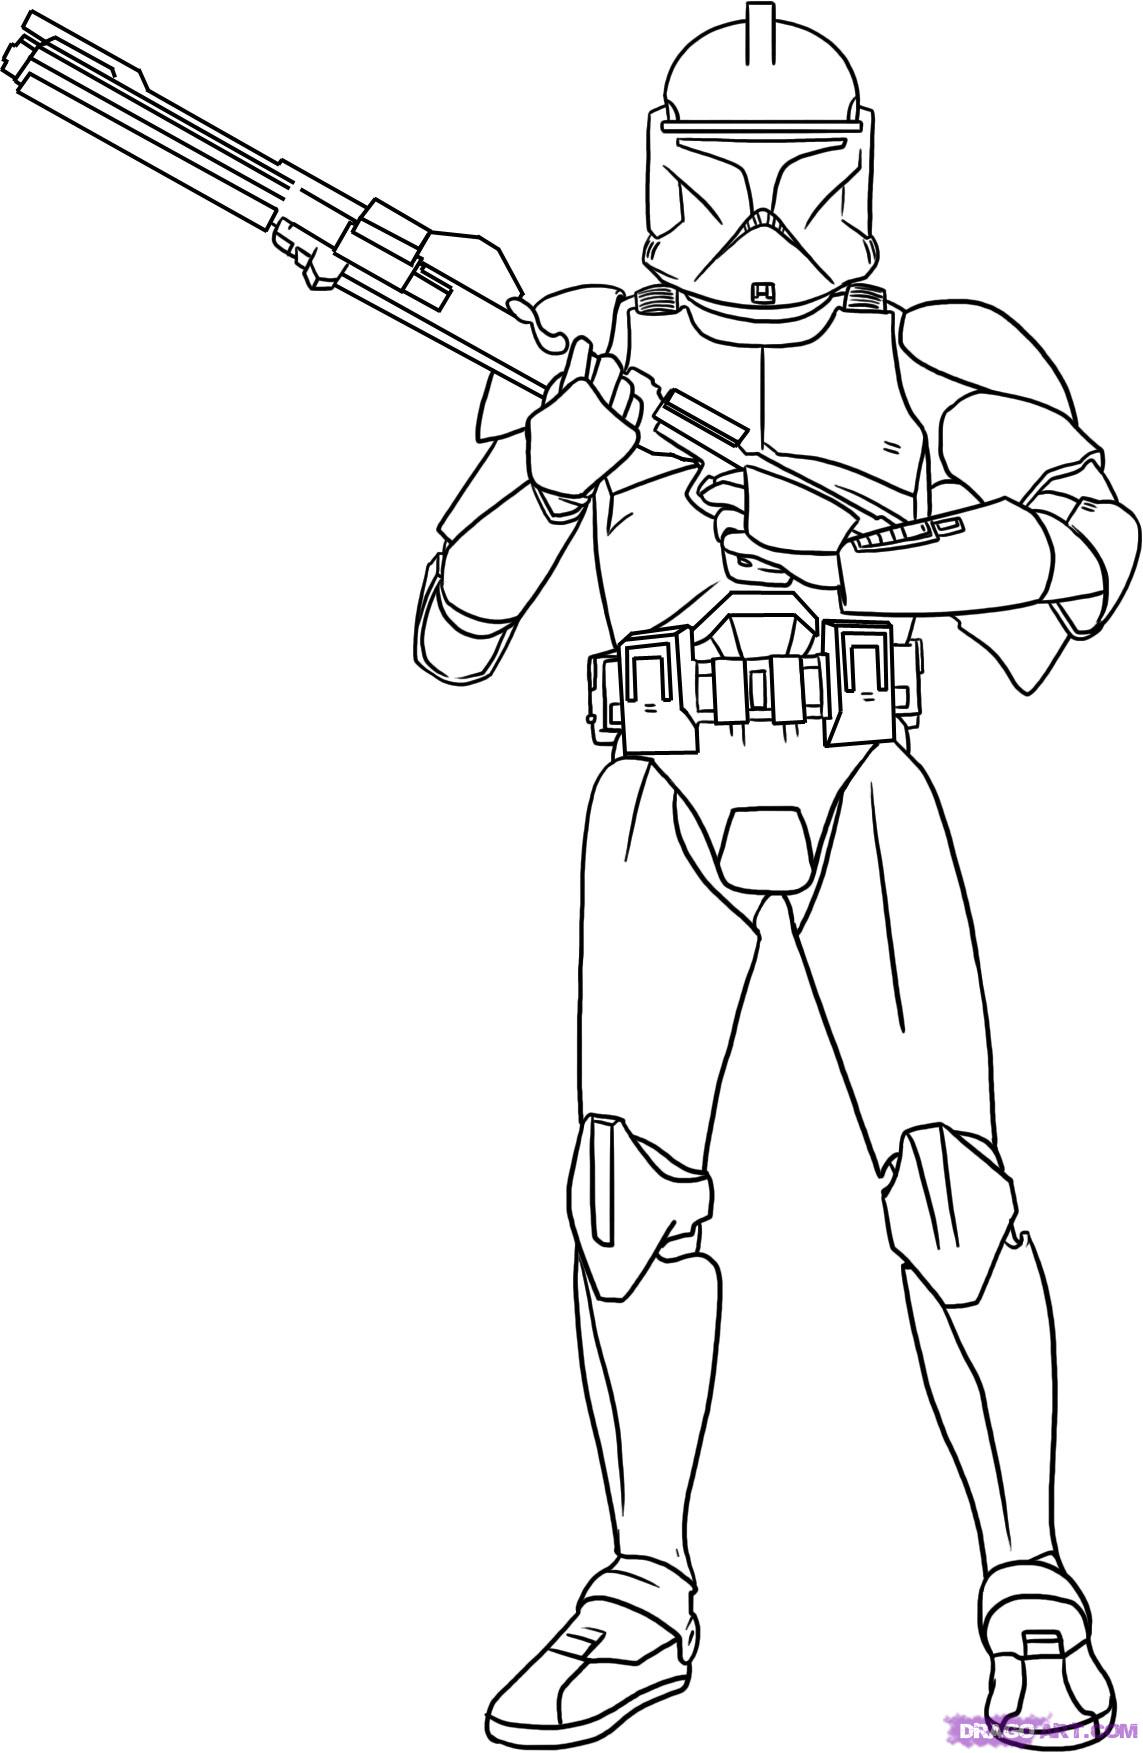 Star Wars the Clone Wars Gallery Of Fresh Star Wars Coloring Pages to Print